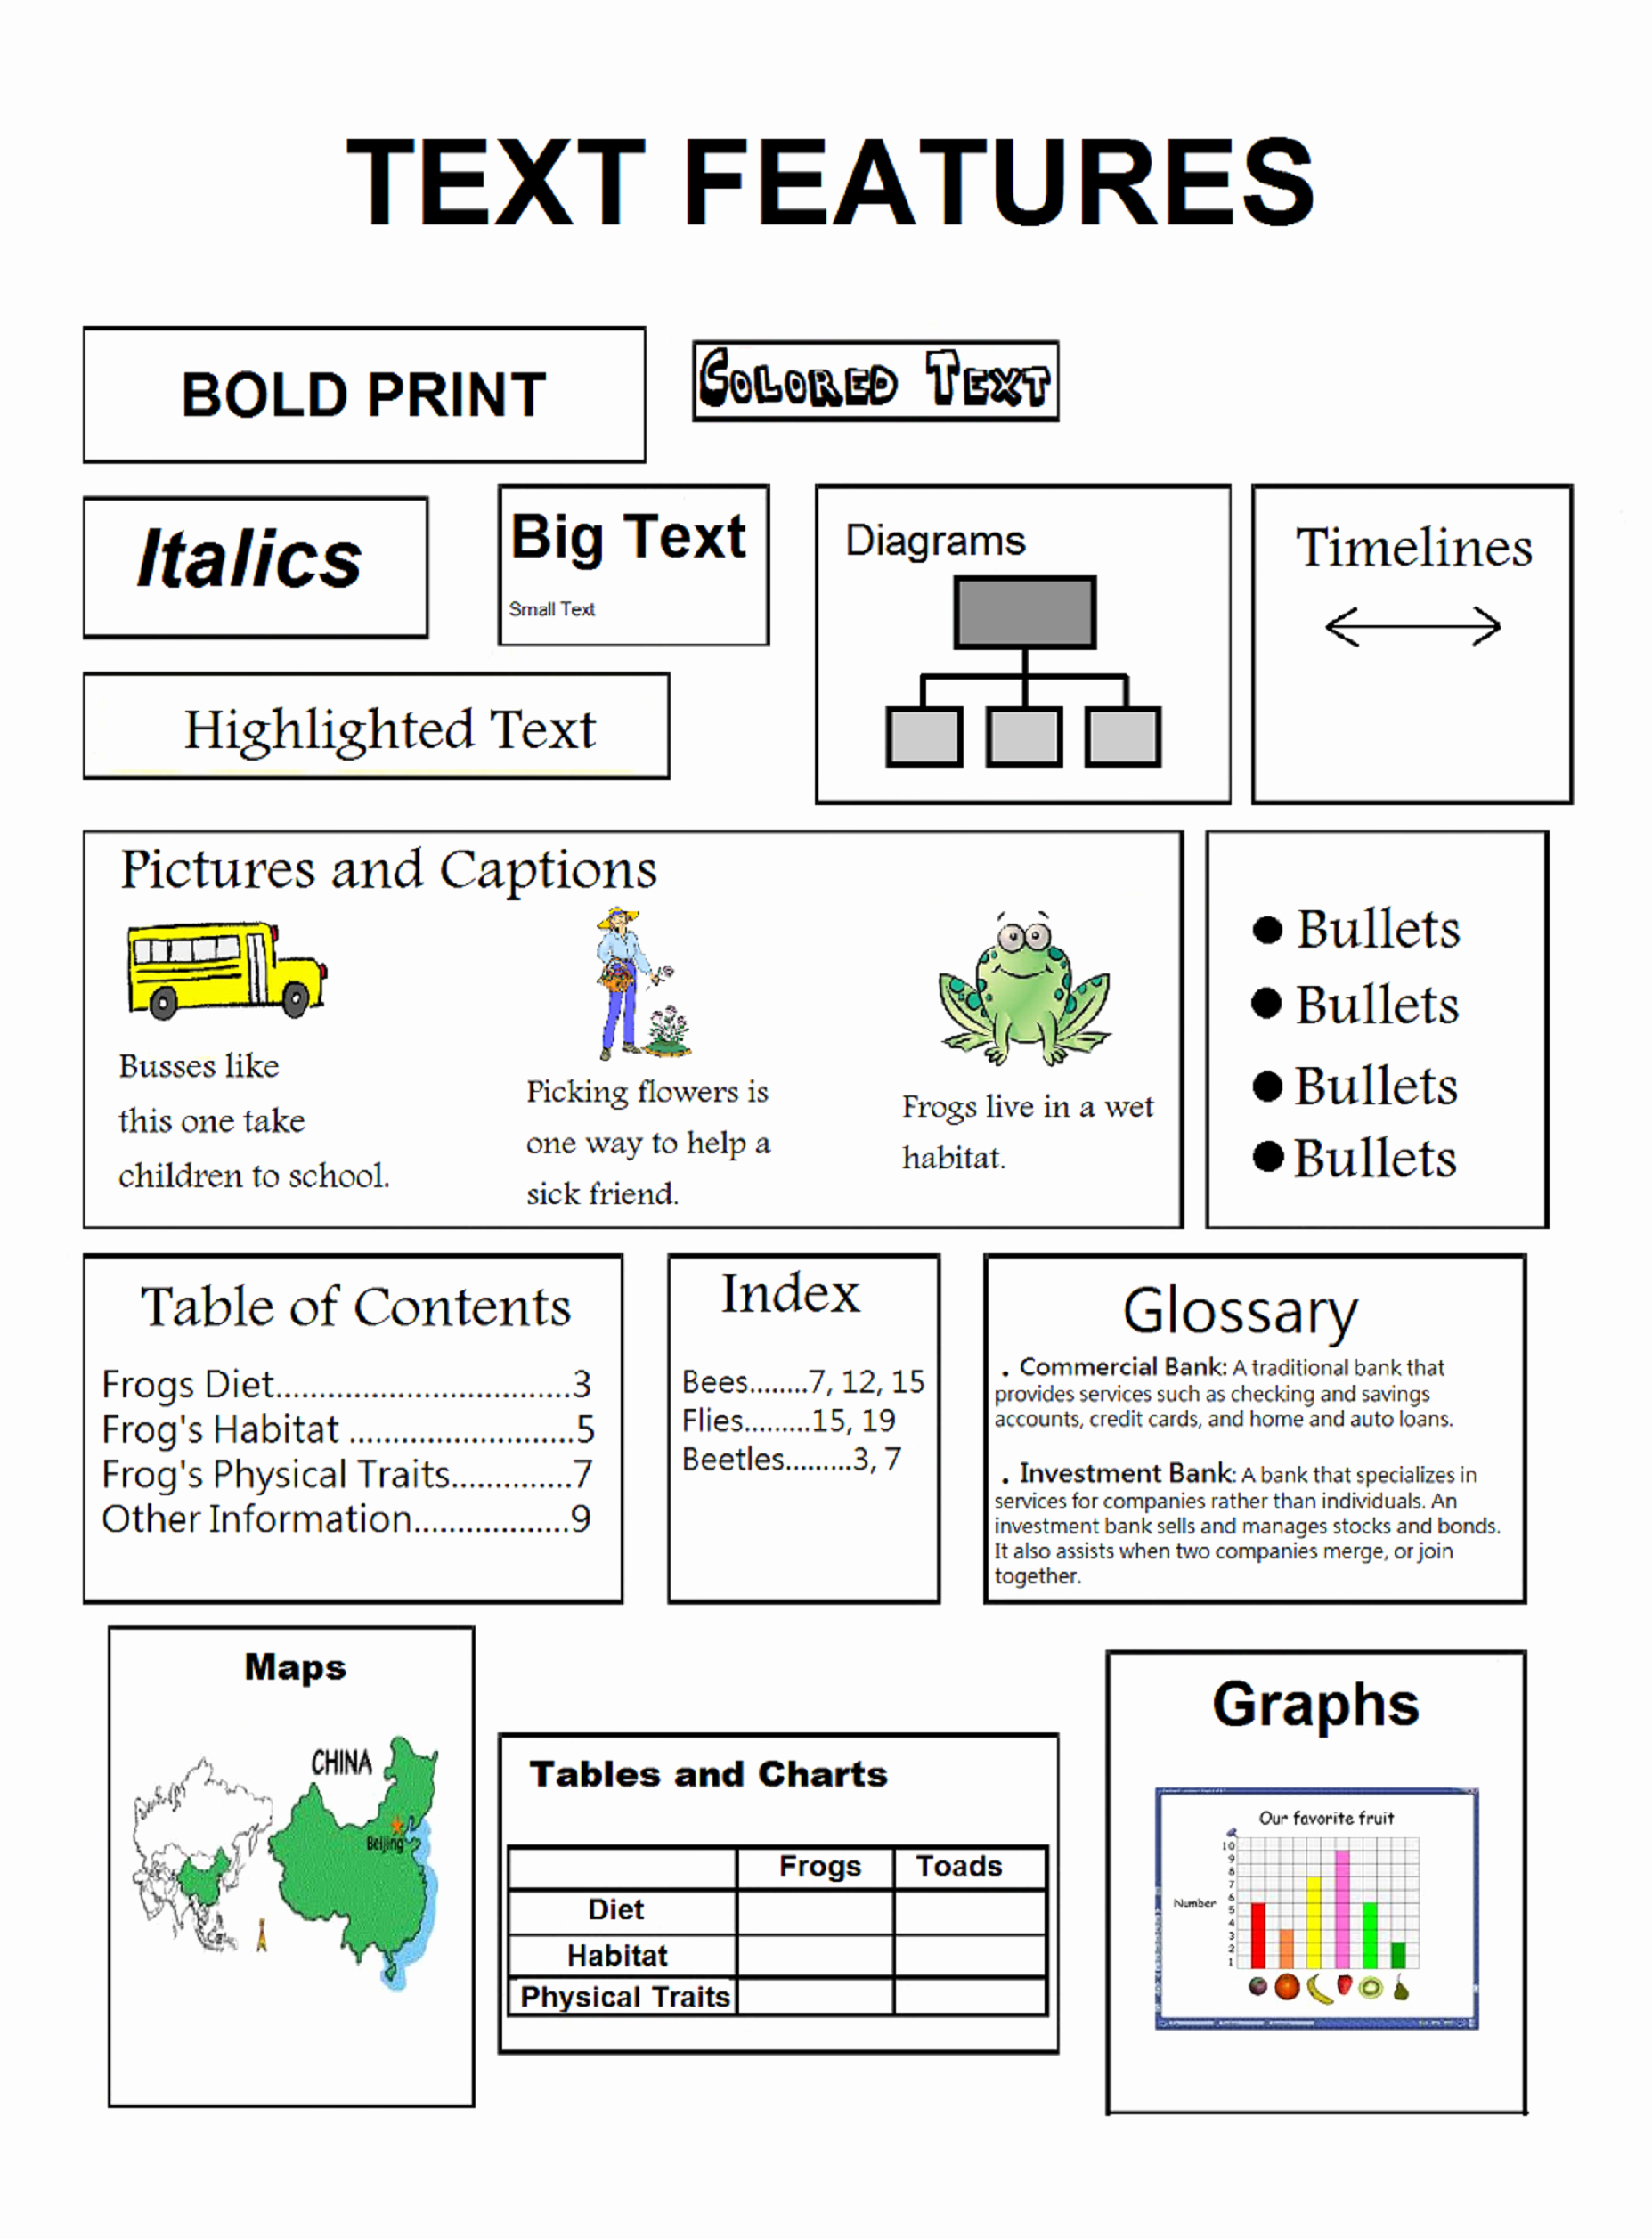 Text Features Worksheet 2nd Grade Inspirational Printable Teaching Text Features 3rd Grade with Teaching